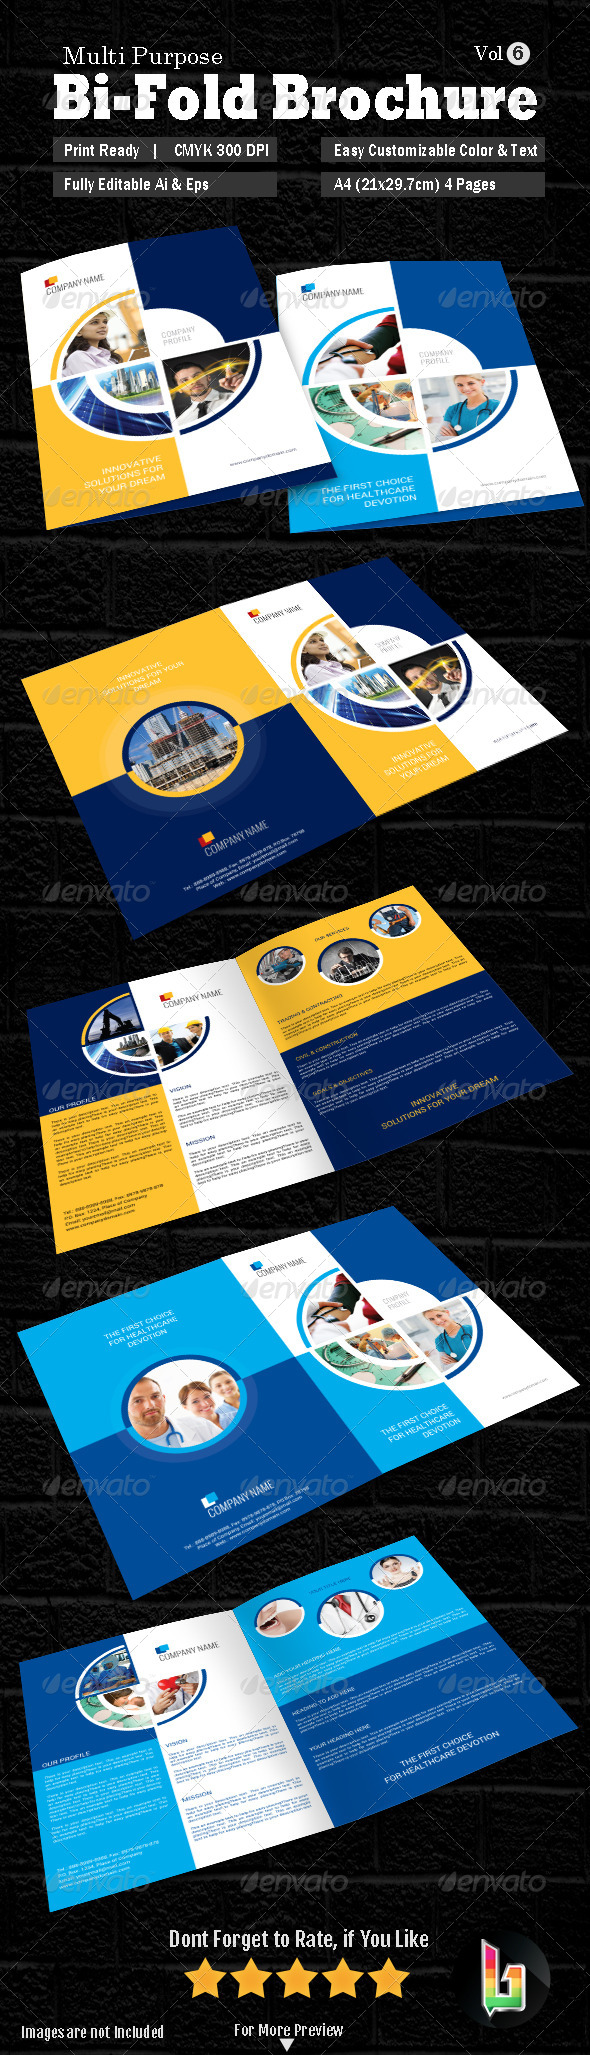 Multipurpose Bi-fold Brochure Vol-6